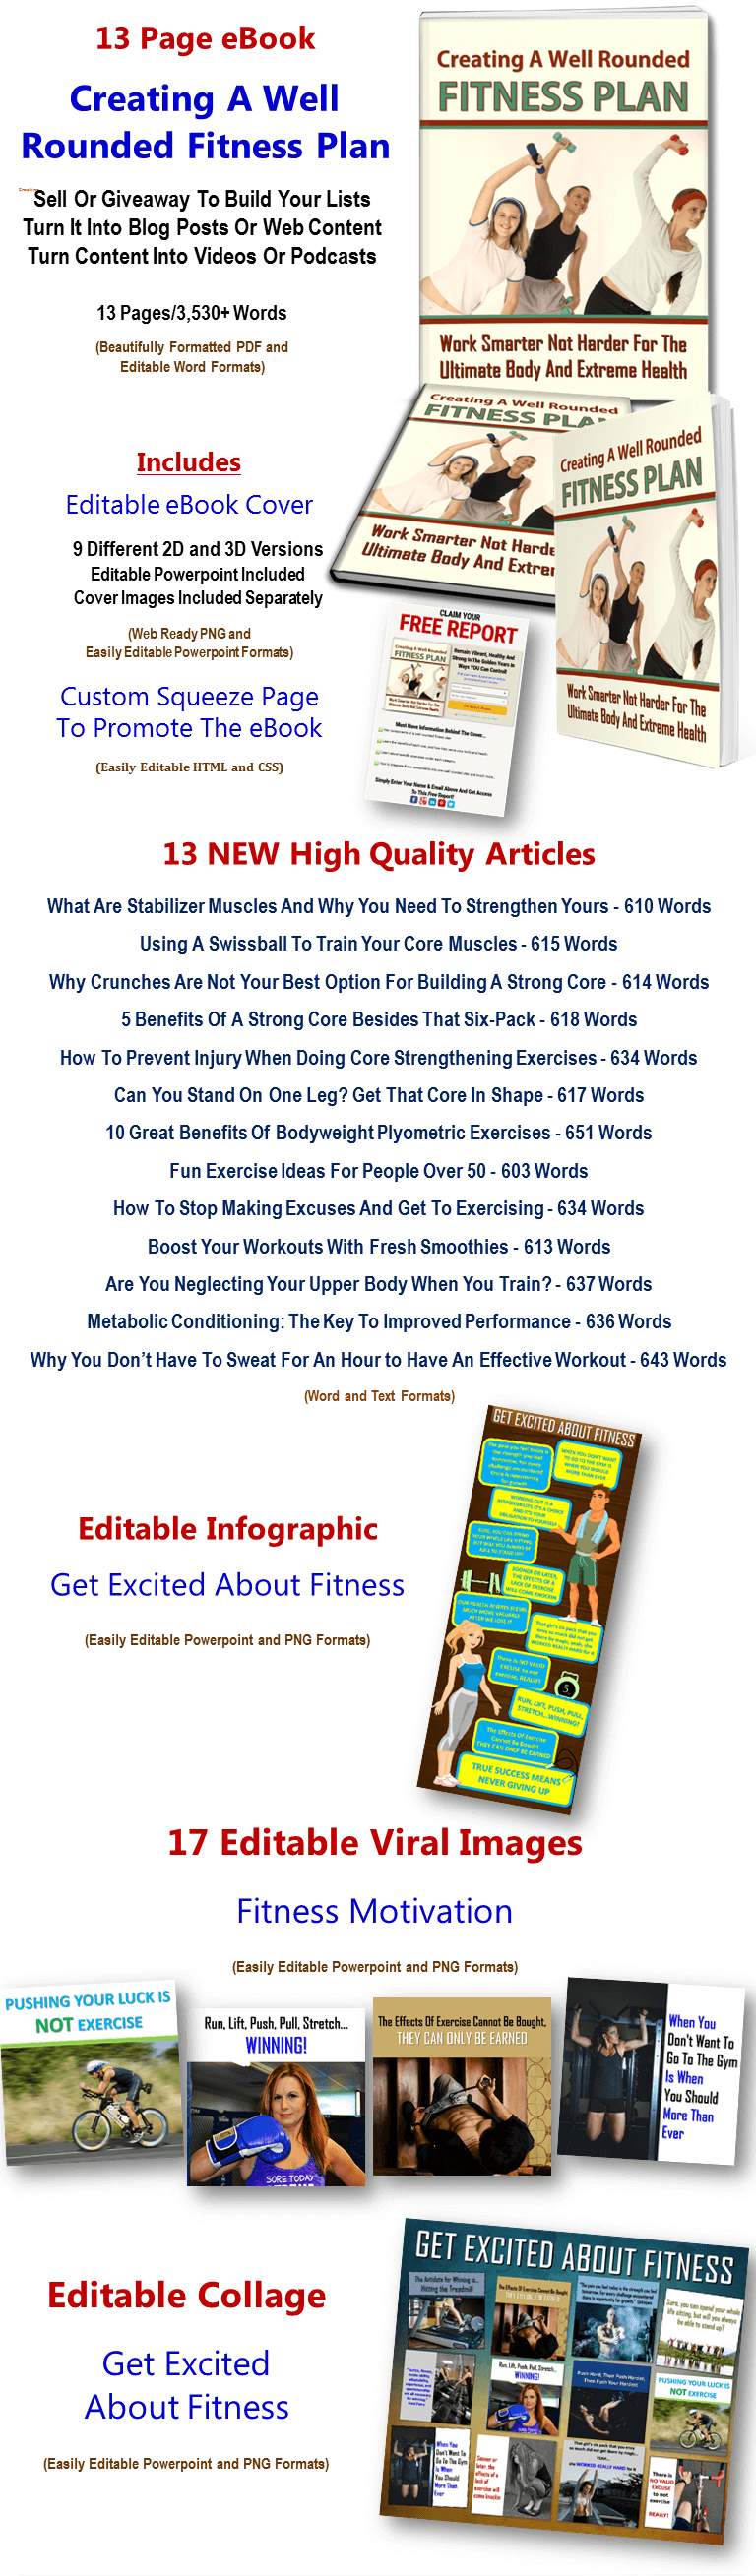 Fitness Plan eBook, Articles, Images, Infographics PLR Pack